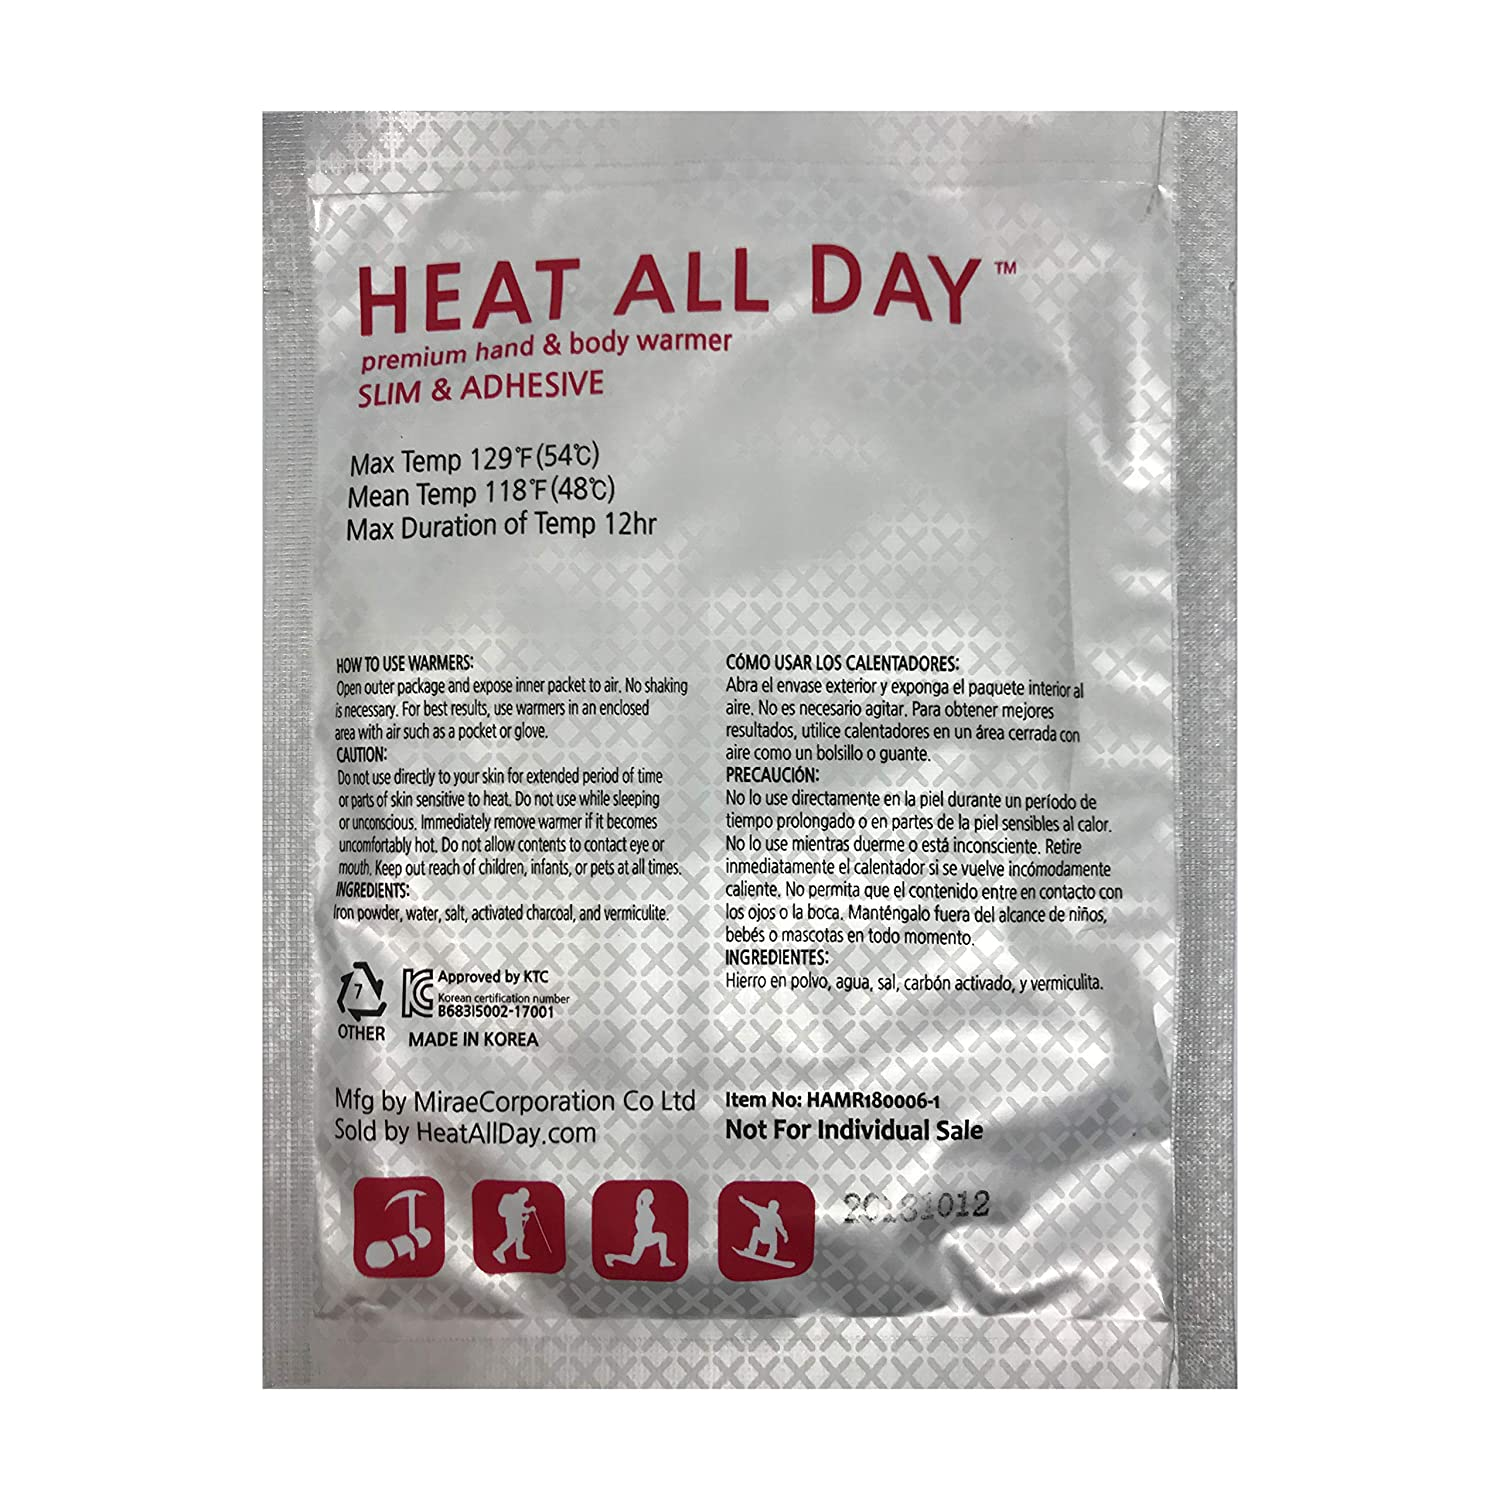 Amazon.com: Heat All Day Hand Warmers - Lasts 12 Hours at Max Temp 129F - Adhesive Slim Pack of 30 - Safe & Odorless (Air Activated): Sports & Outdoors